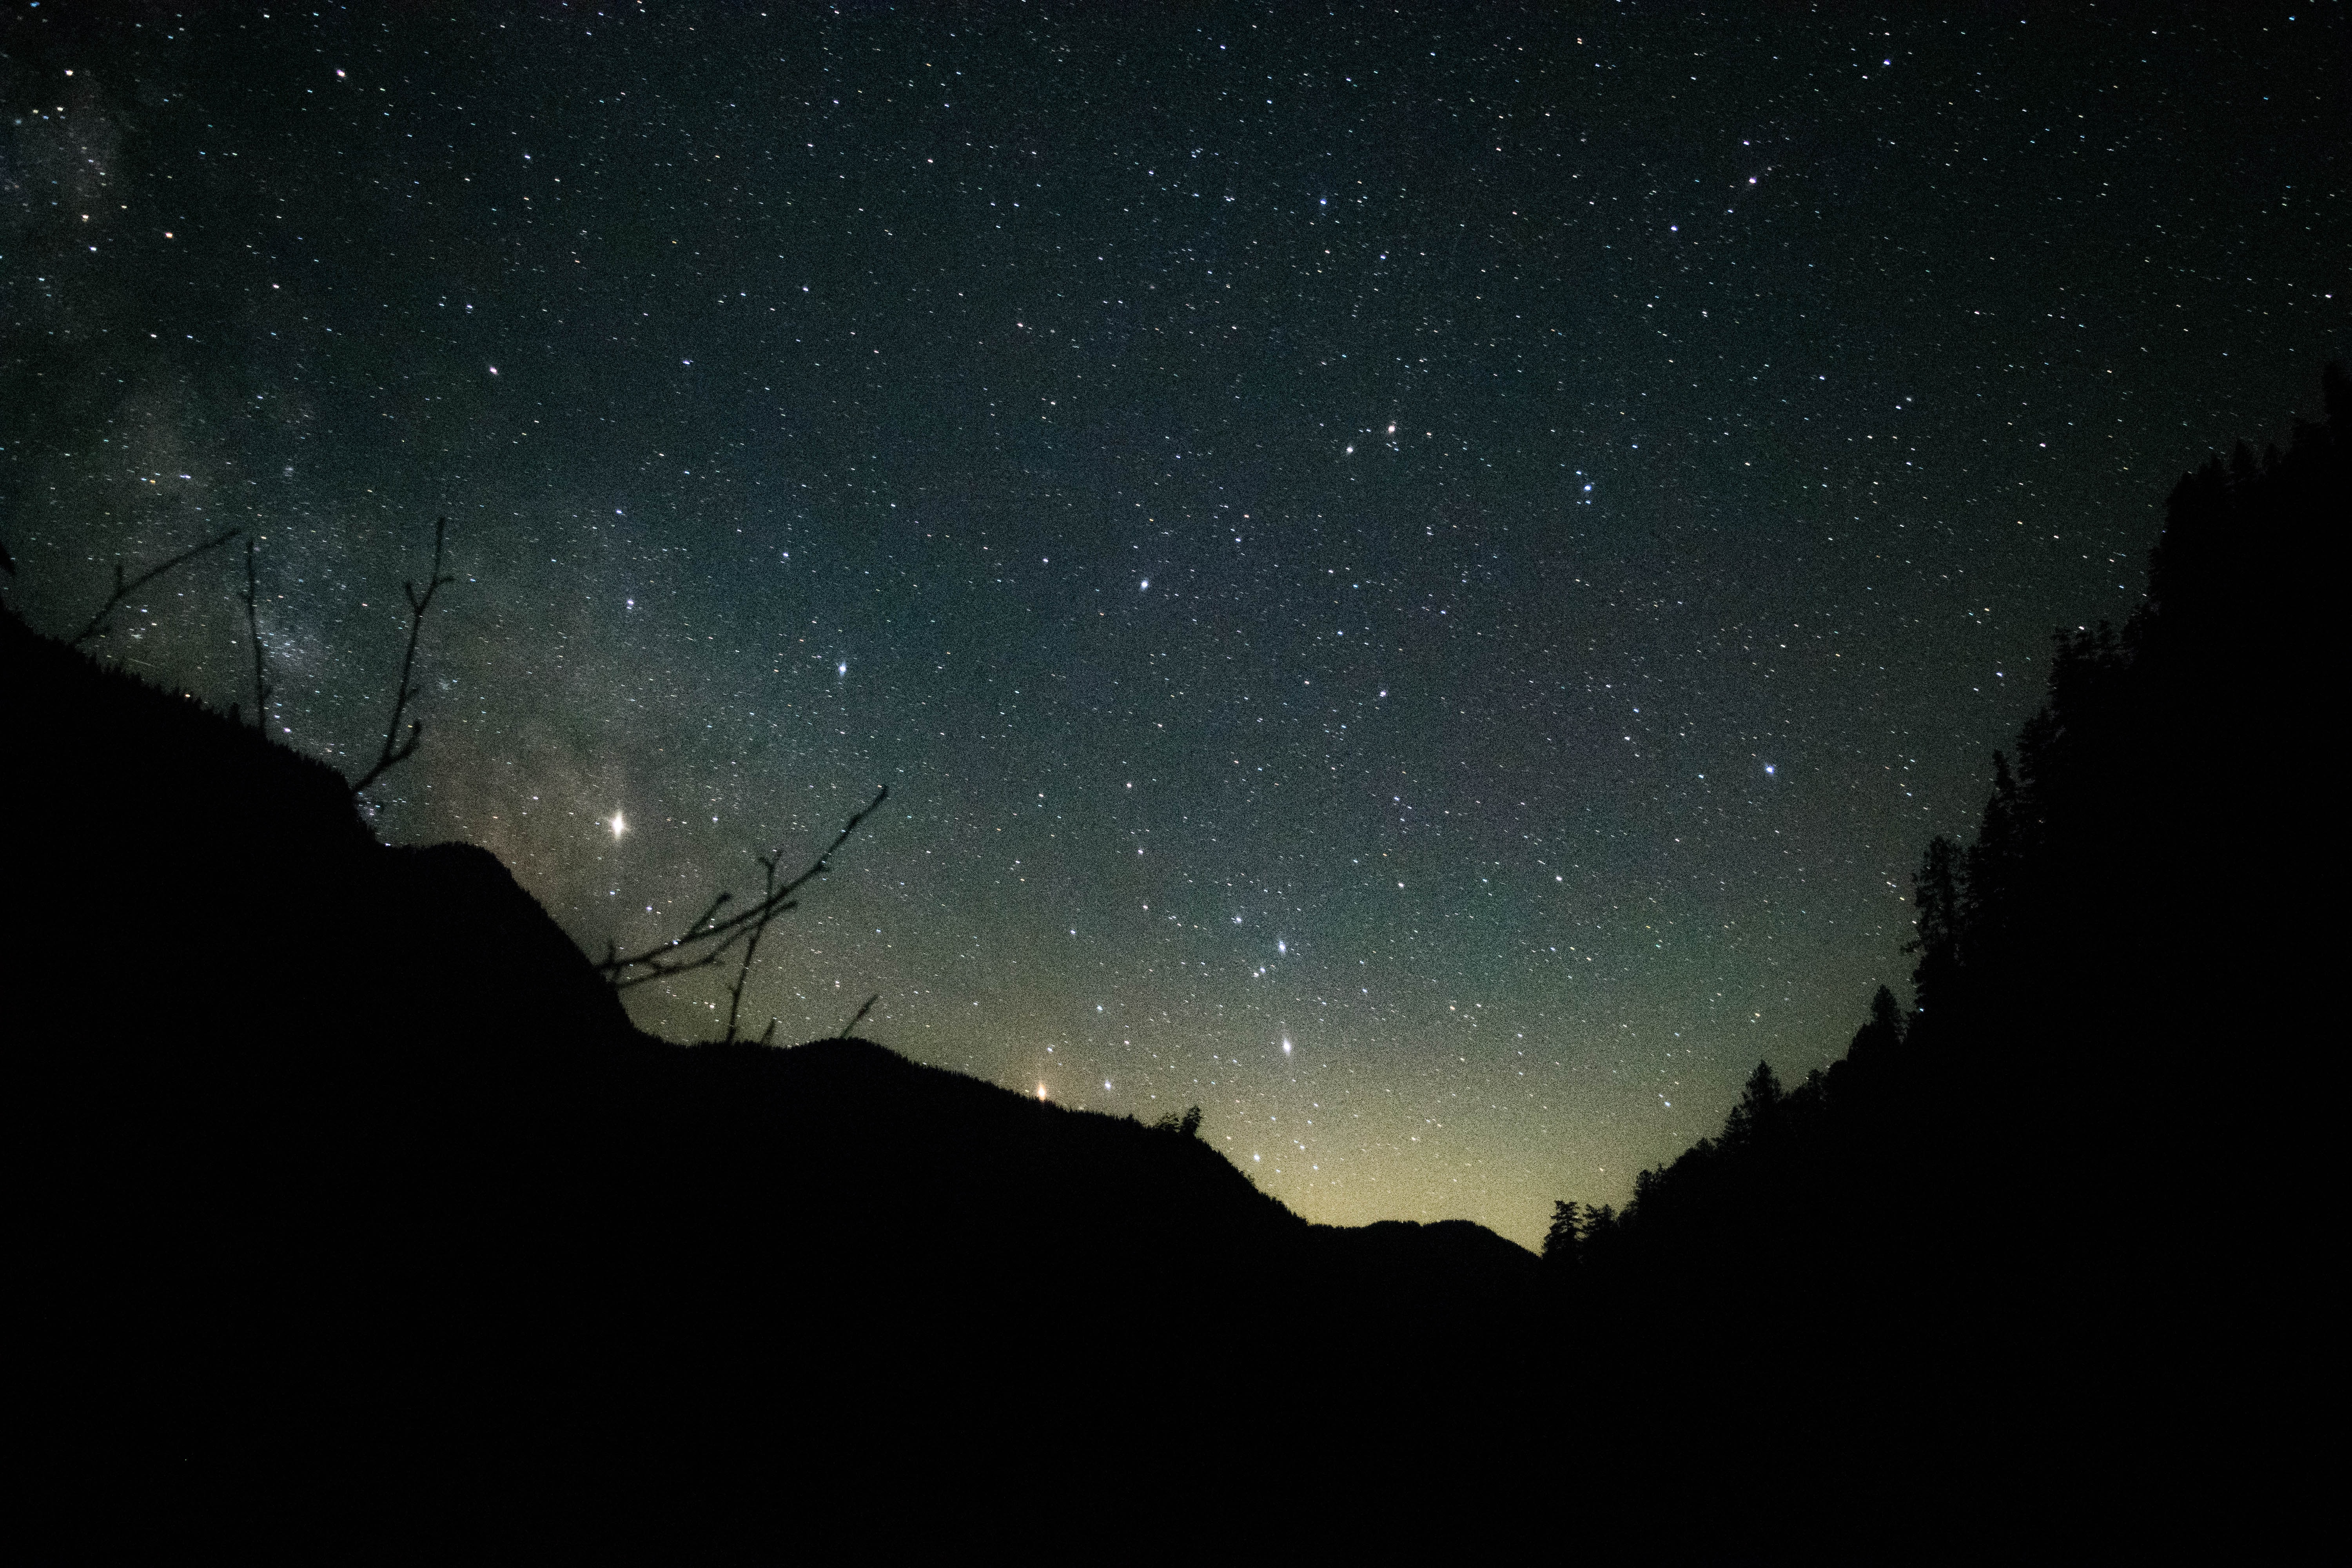 silhouette of trees and mountain undre green and blue starry night sky